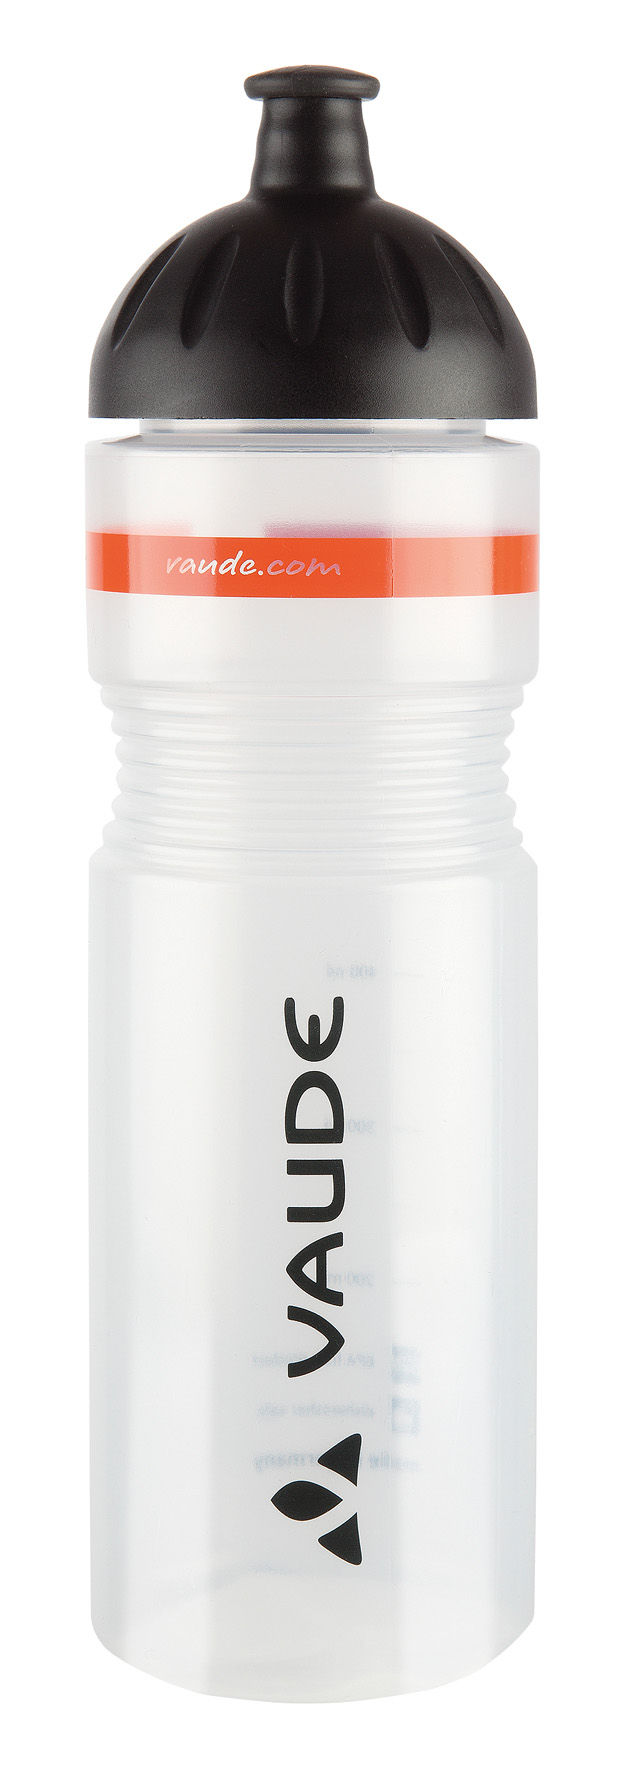 VAUDE Outback VAUDE Bike Bottle, 0,75l transparent  - schneider-sports